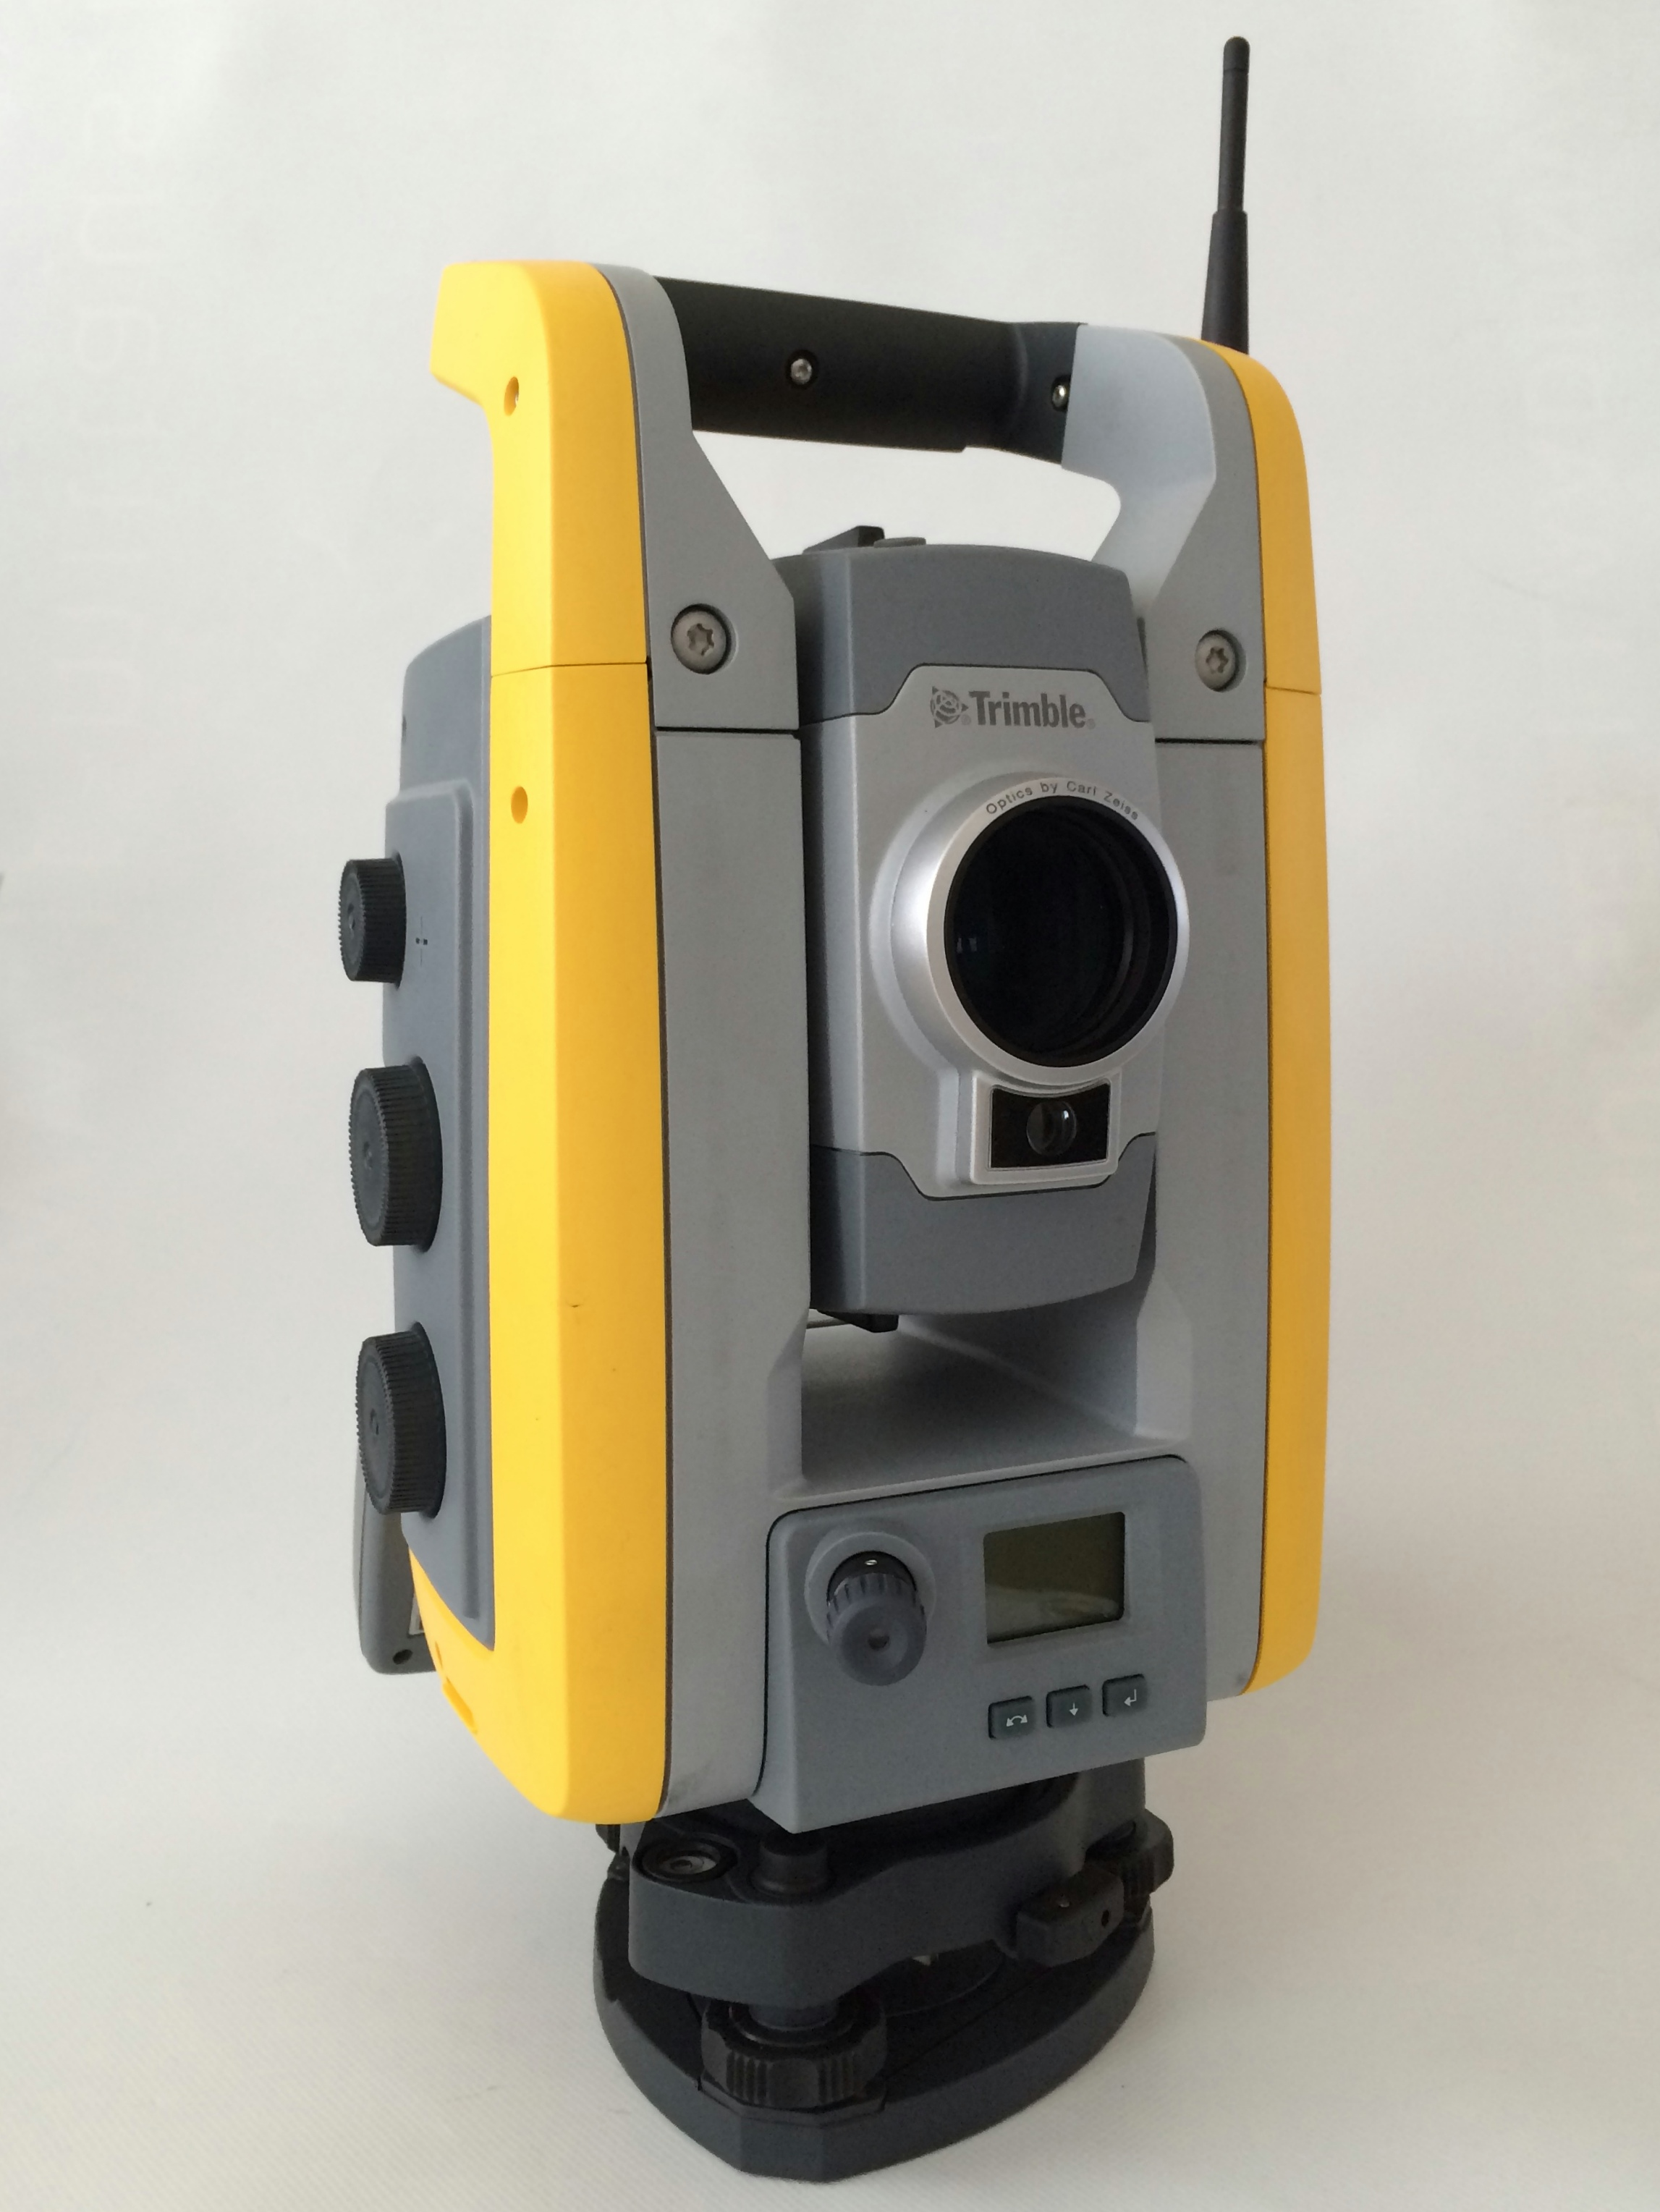 Trimble S6 Total Station, Proacon Oy